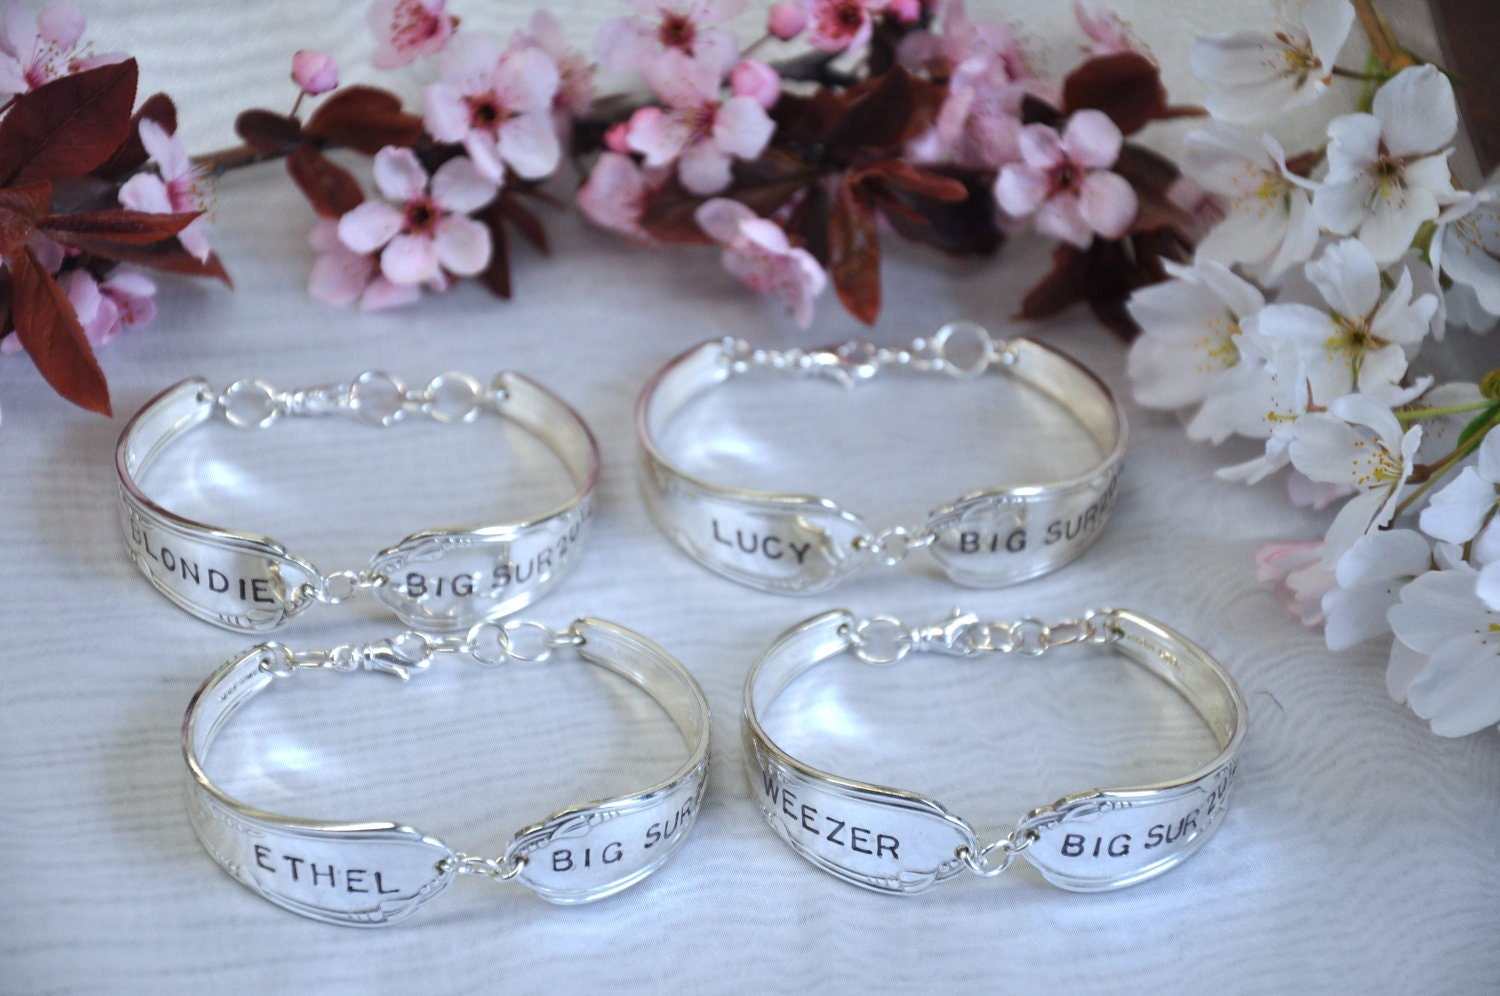 4 Silver Spoon Bracelets Personalized